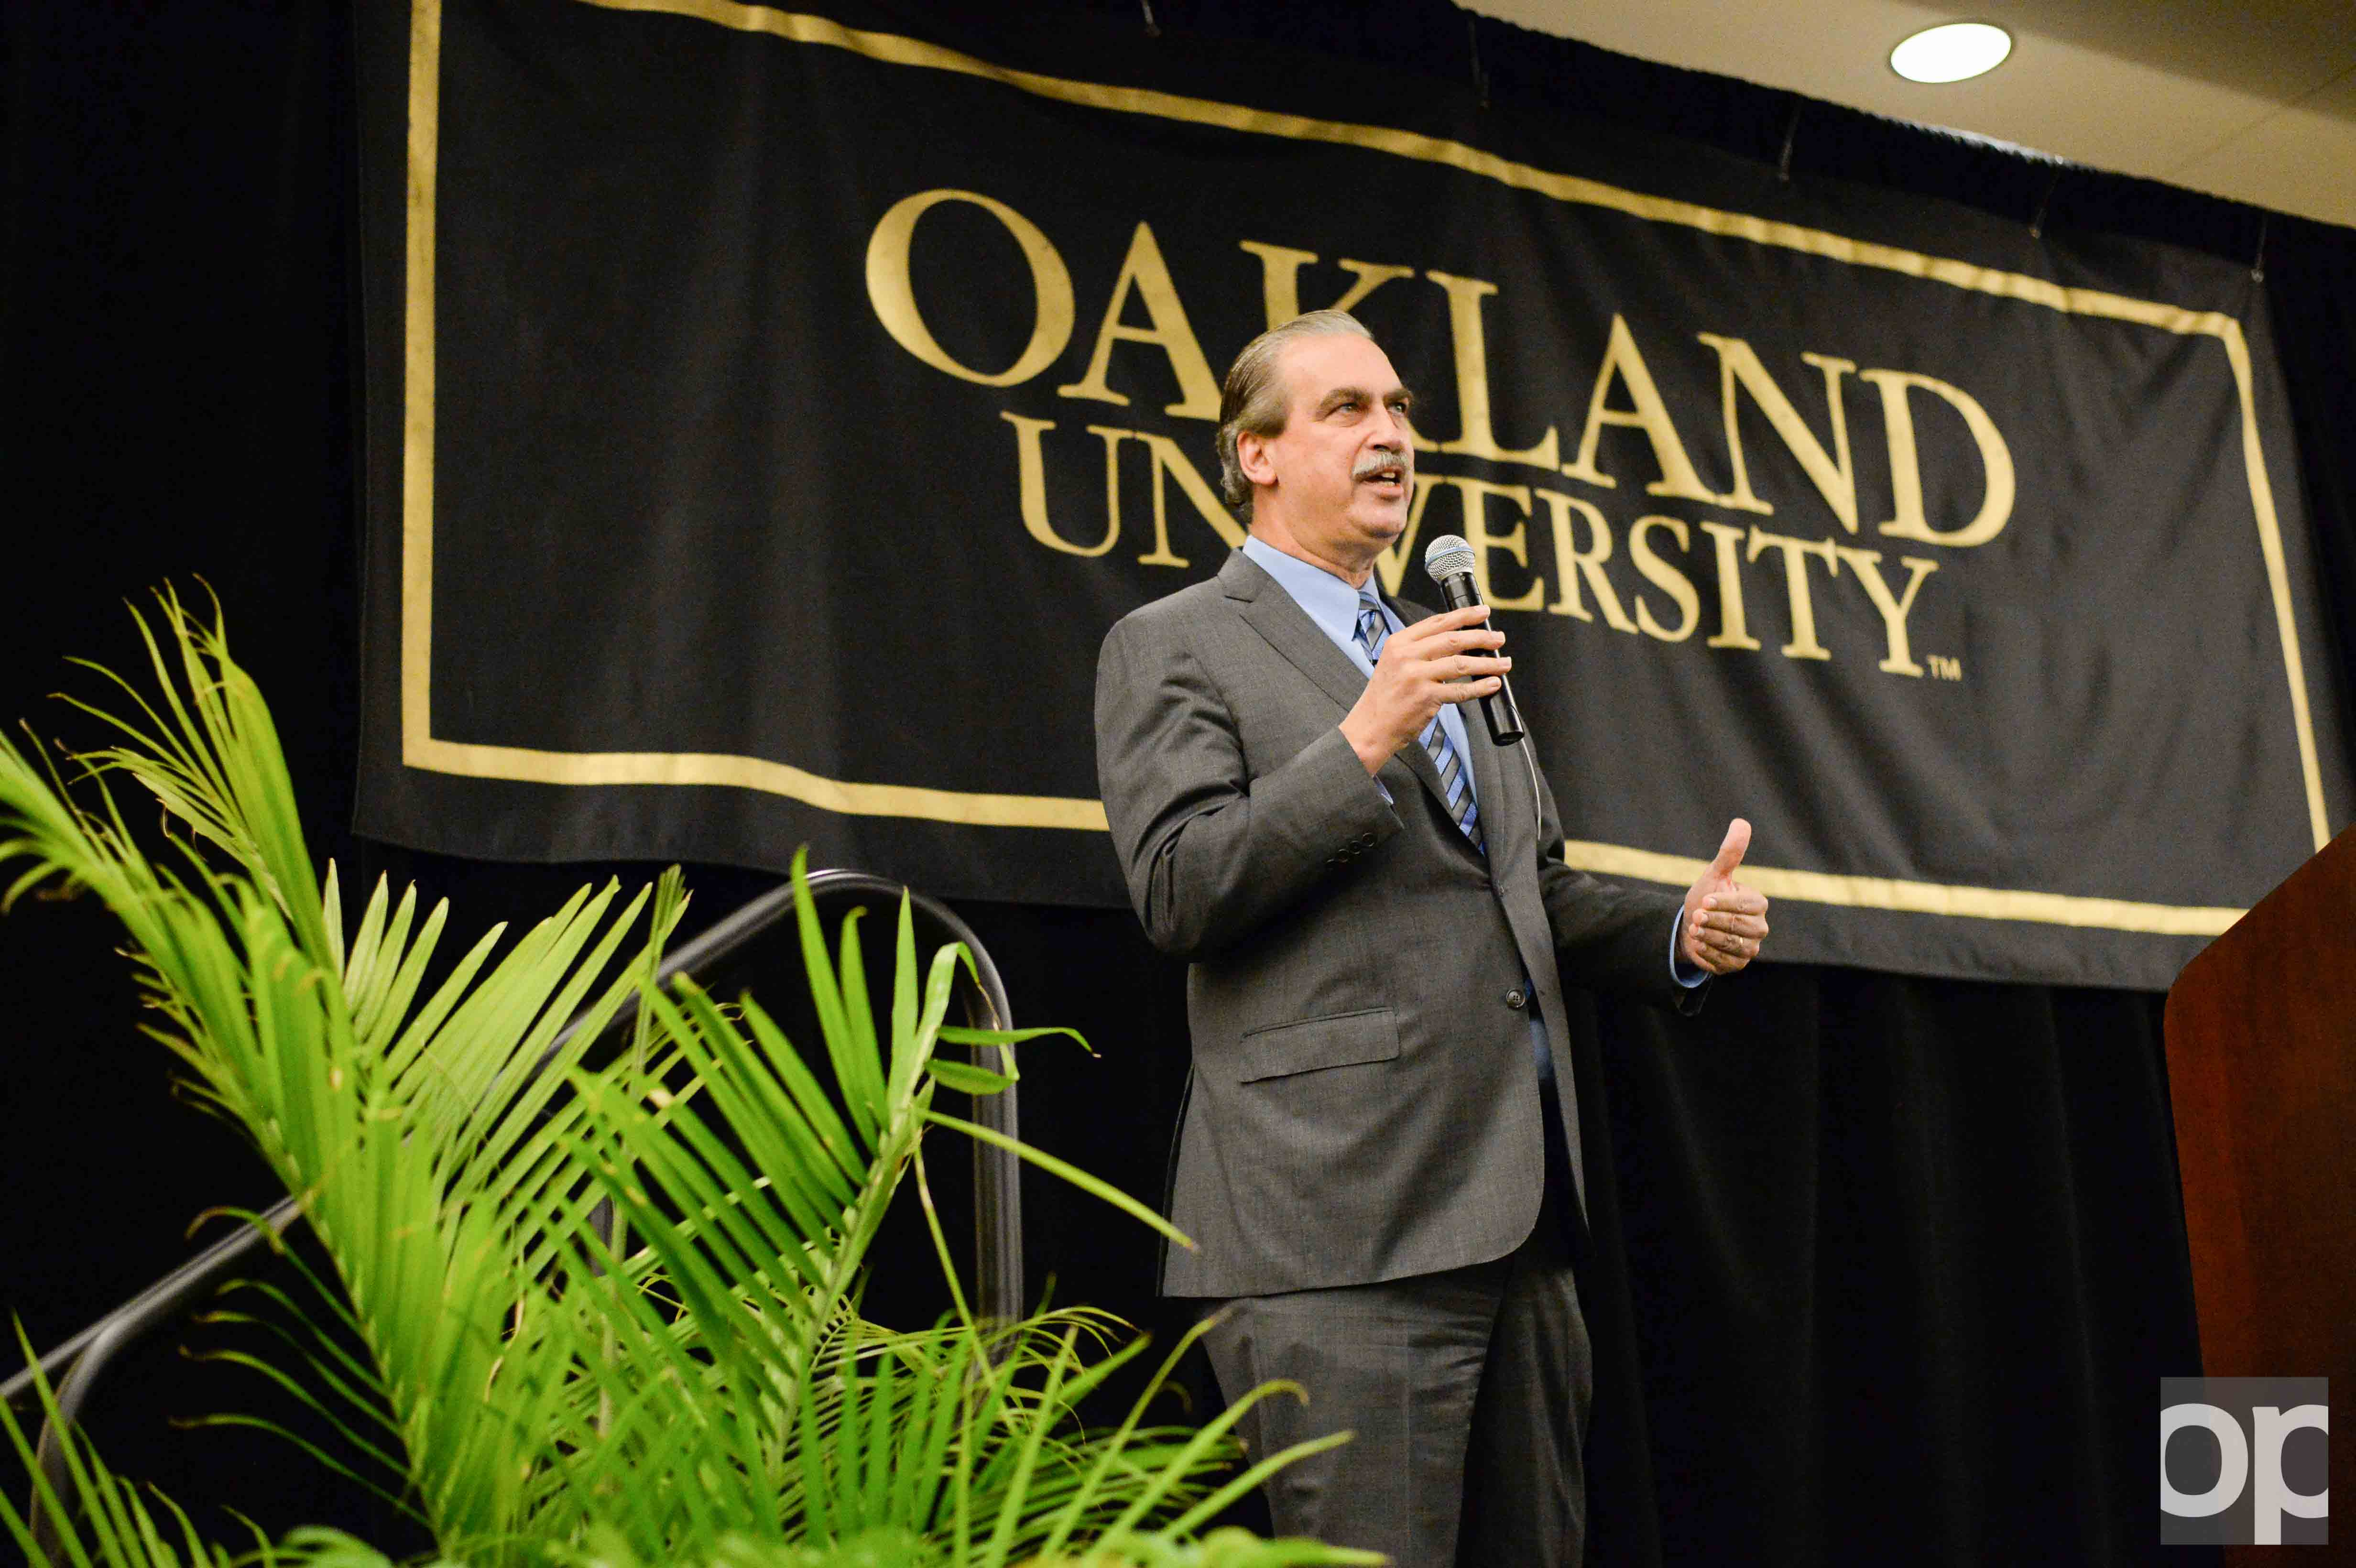 Carl Camden is one of two finalists in Oakland University's presidential search.